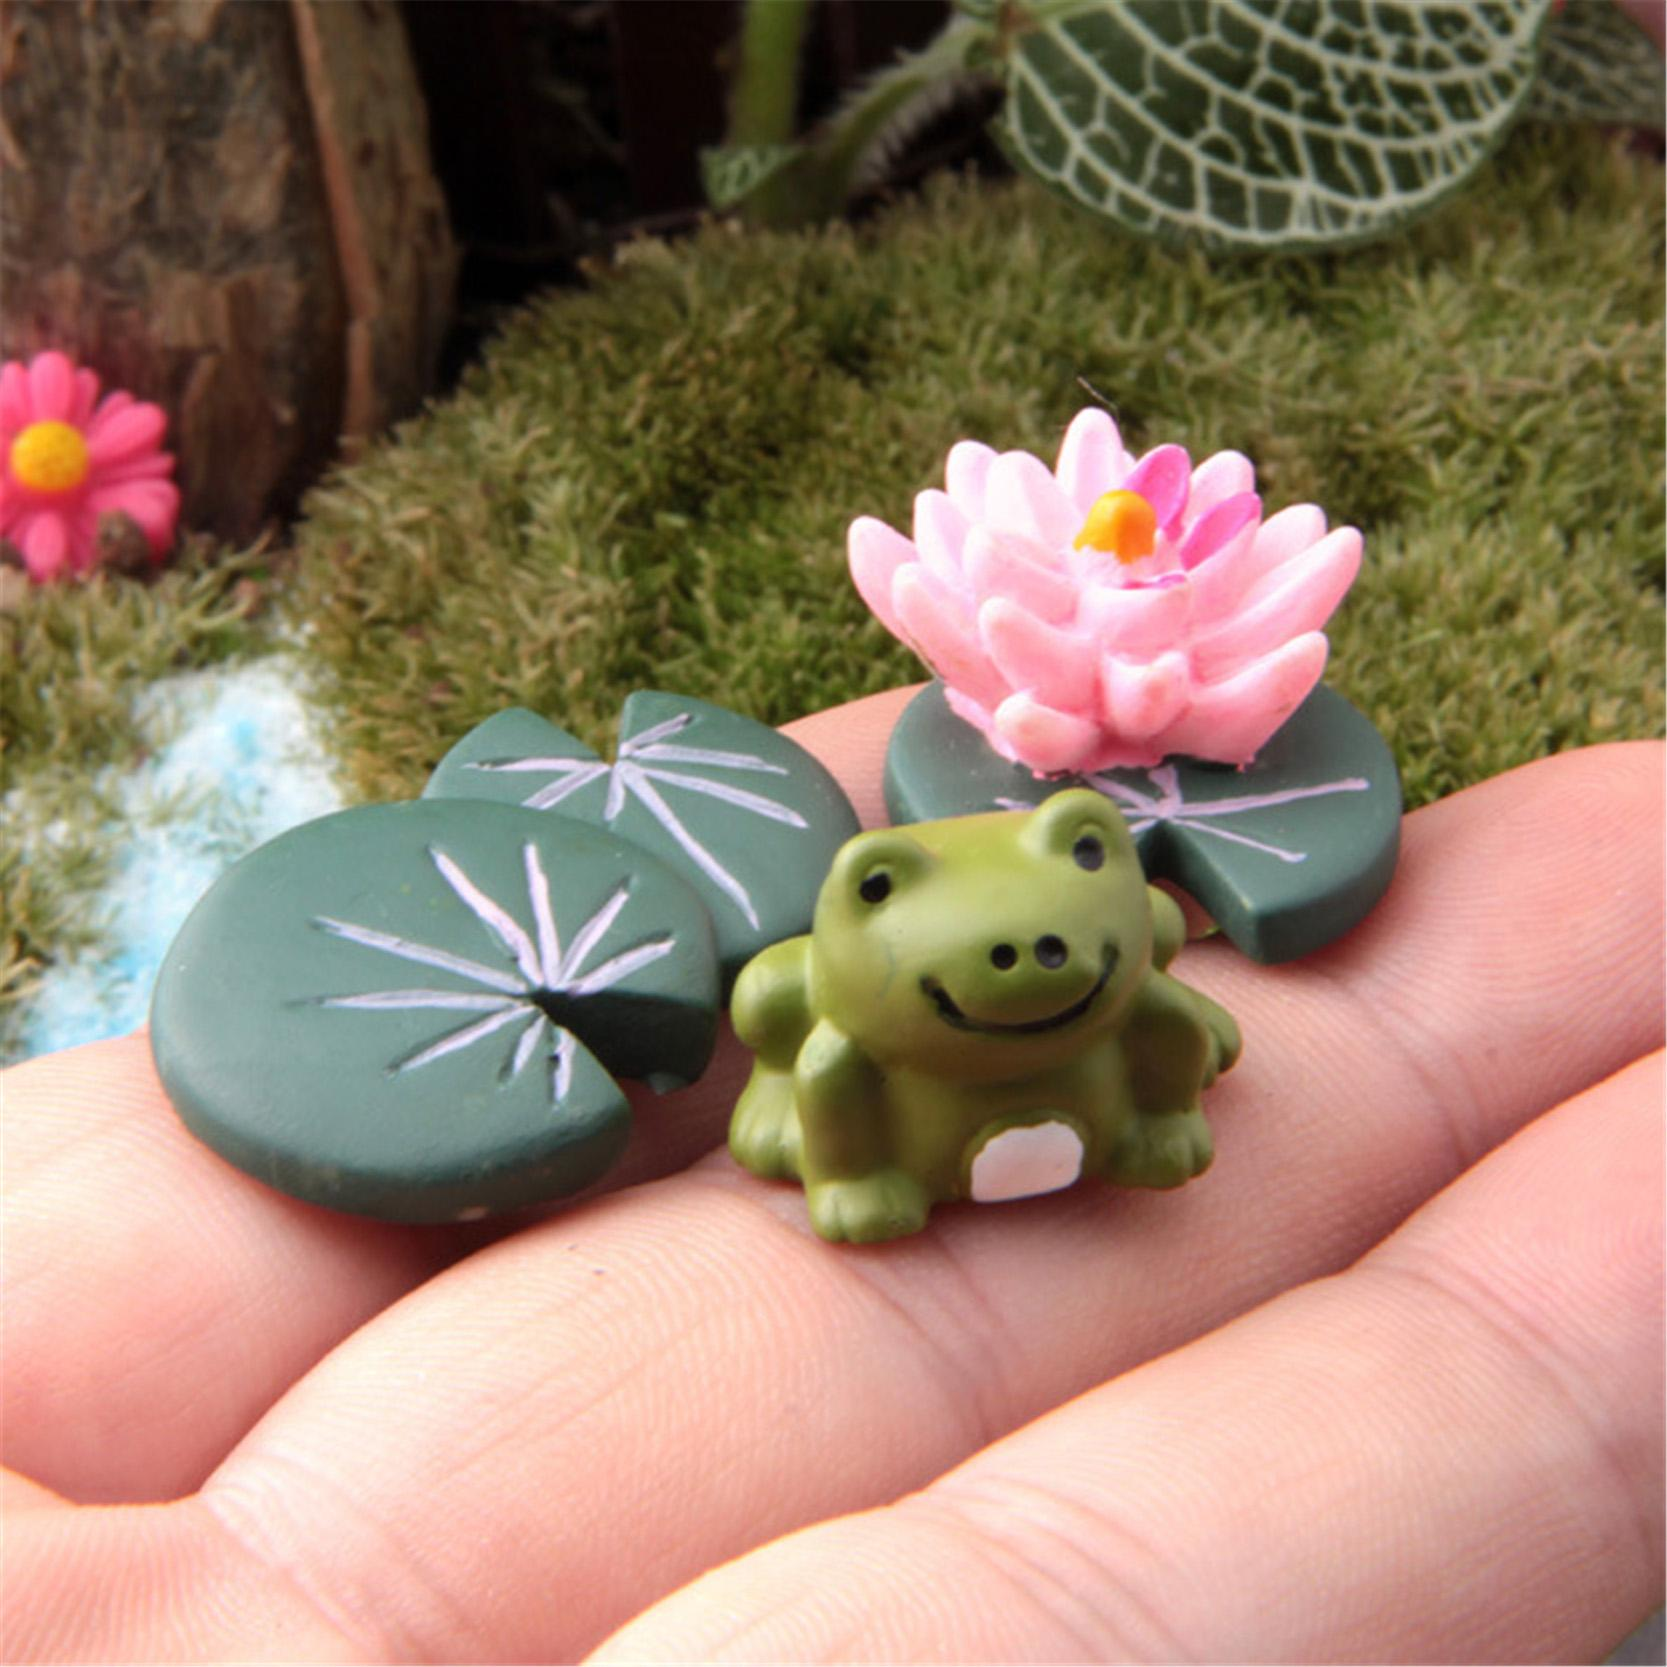 Wholesale- 3Pcs Magic Fairy Garden Miniatures Set Cartoon Anime Frog & Lotus Leaf & Flower Micro Landscape DIY Figurines Crafts